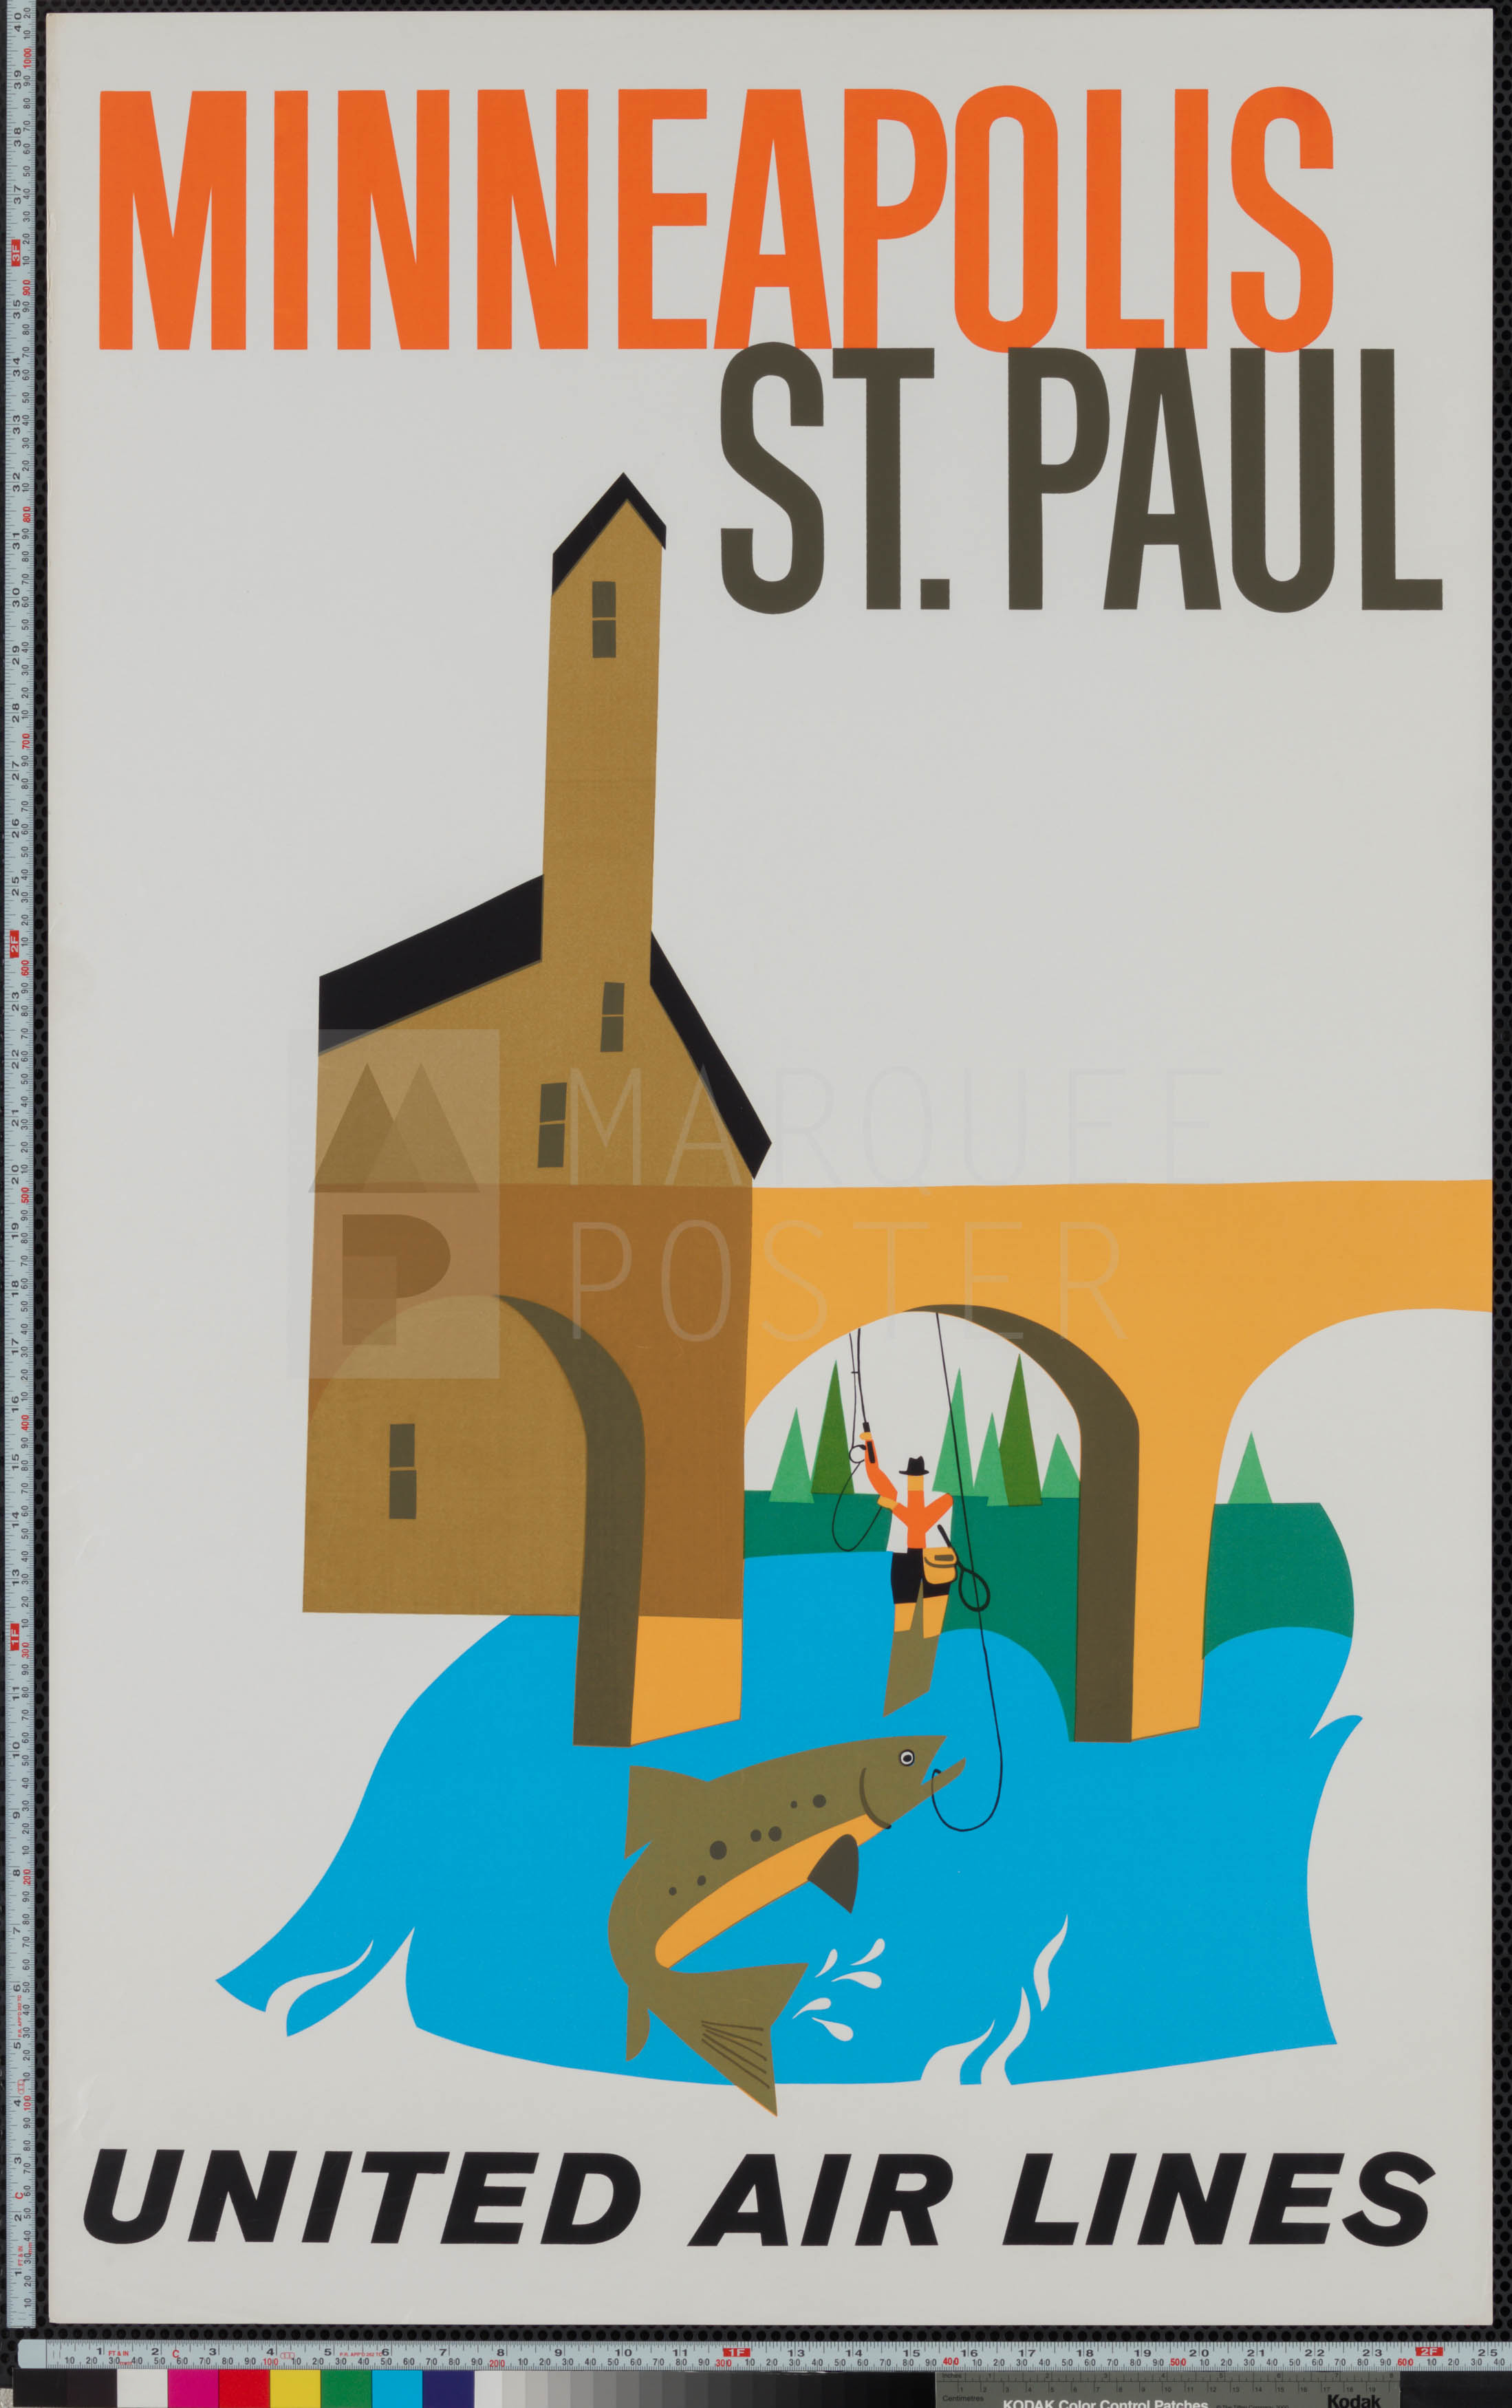 54-united-airlines-minneapolis-st-paul-us-1-sheet-1950s-02